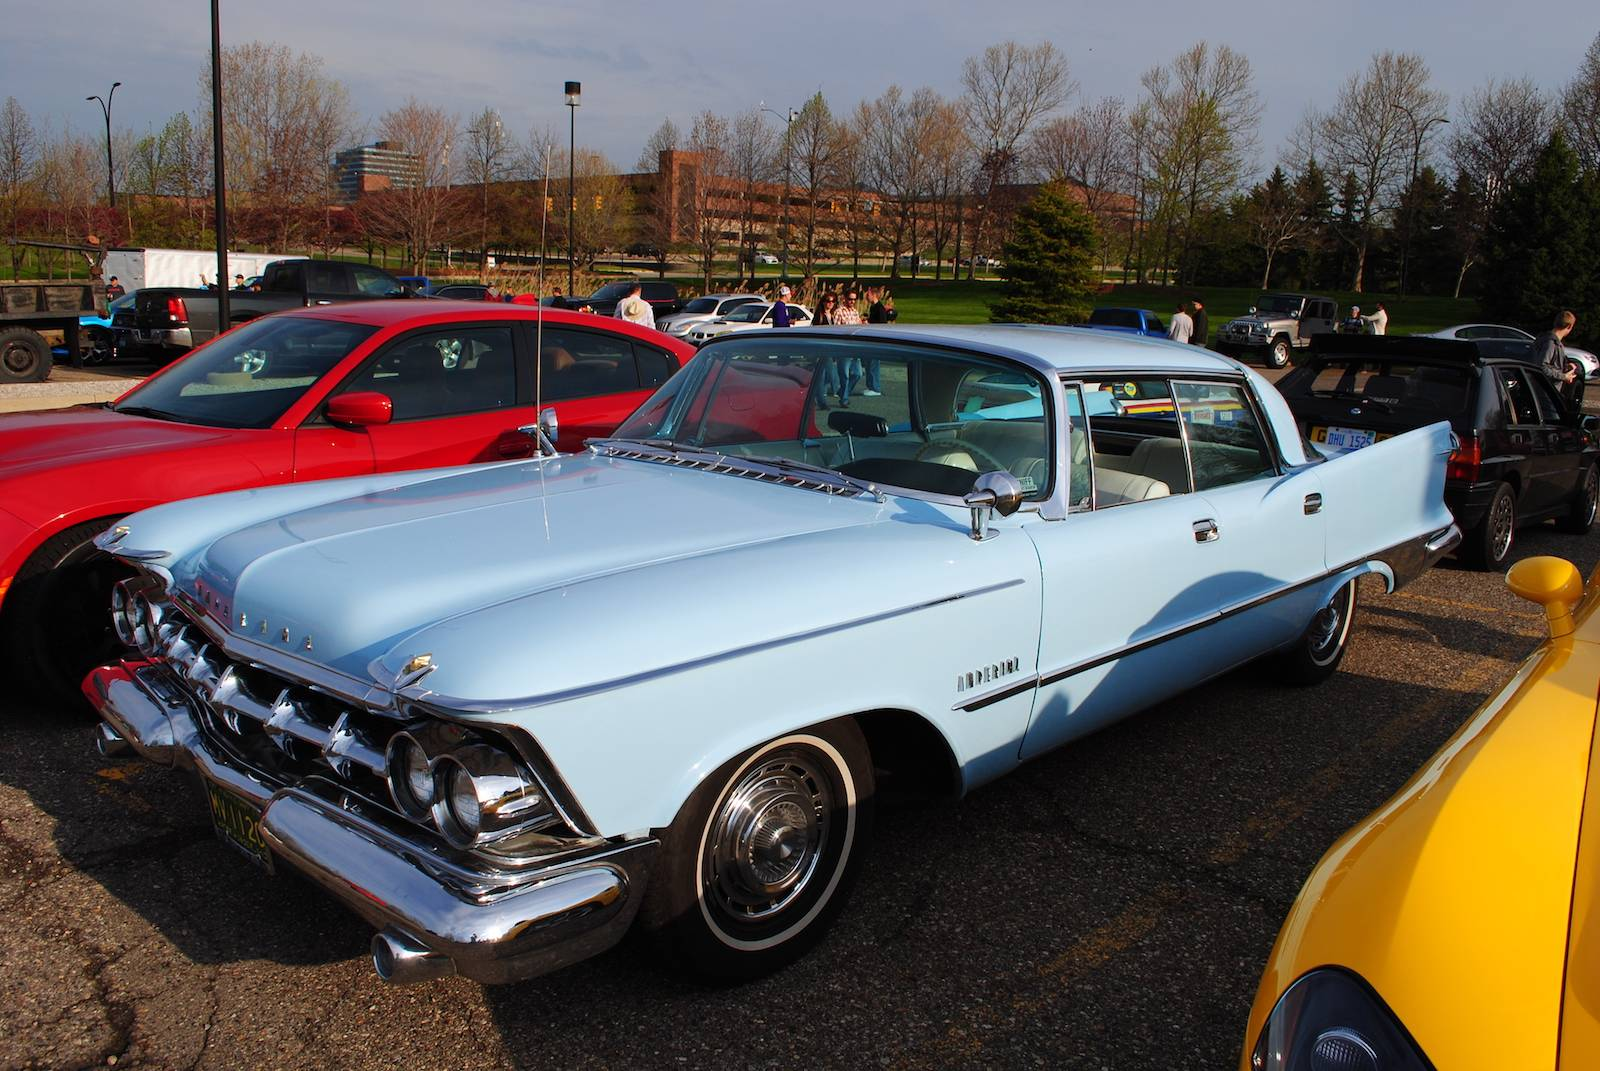 Gallery Fiat Chrysler Design Hosts Cars and Coffee Event